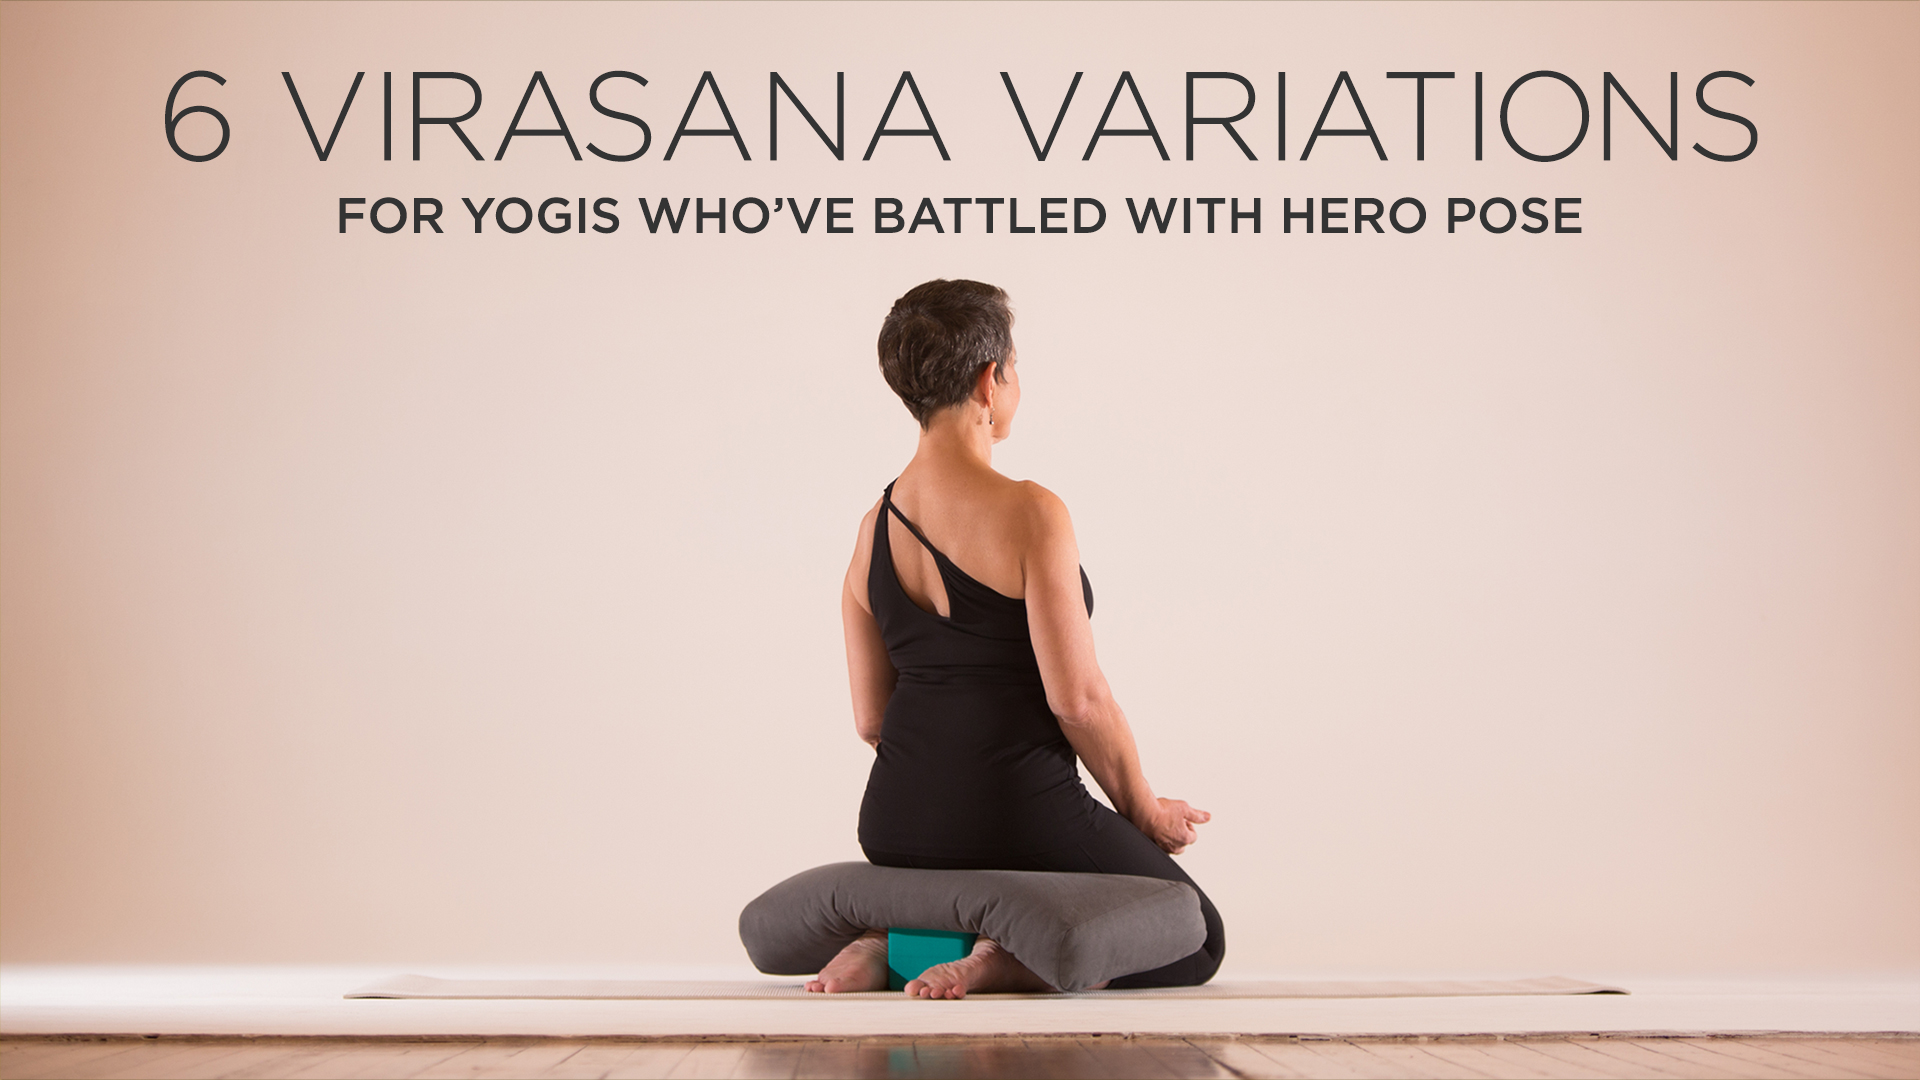 6 Virasana Variations for Yogis Whove Battled With Hero Pose